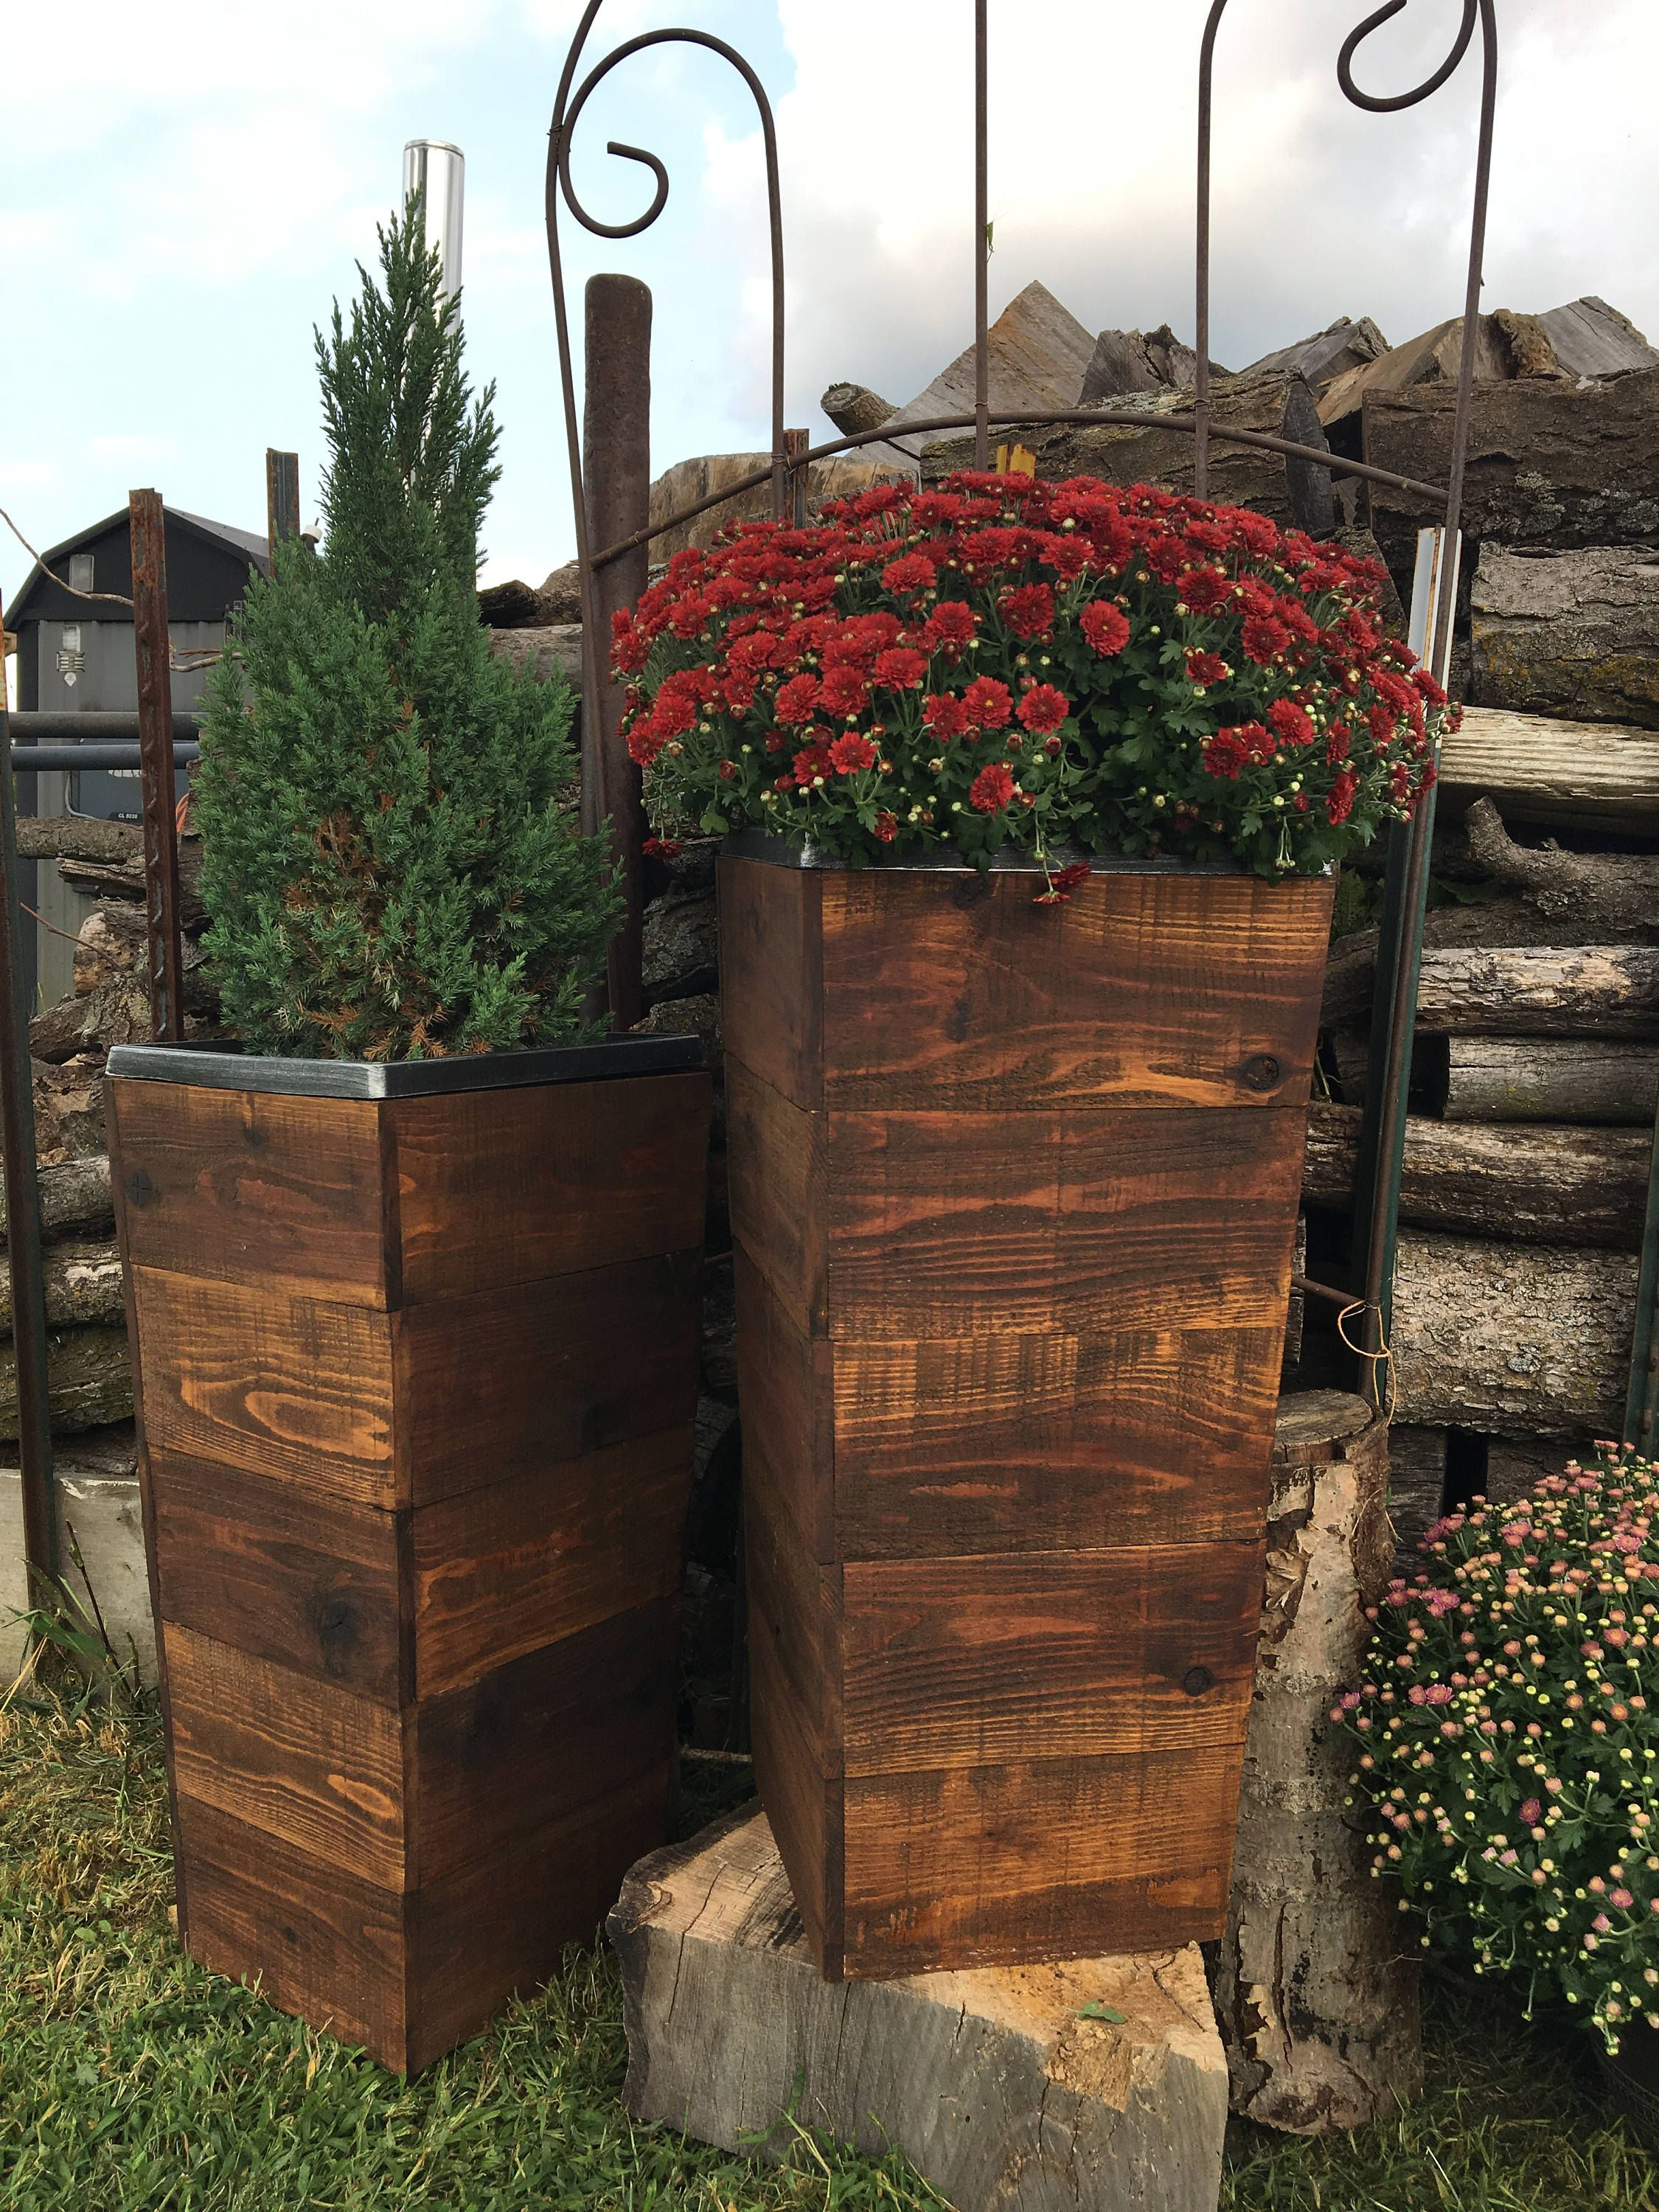 28 Tall Cedar Wood Rustic Planter Box Rustic Planter Etsy In 2020 Rustic Planters Wood Planters Tall Planters